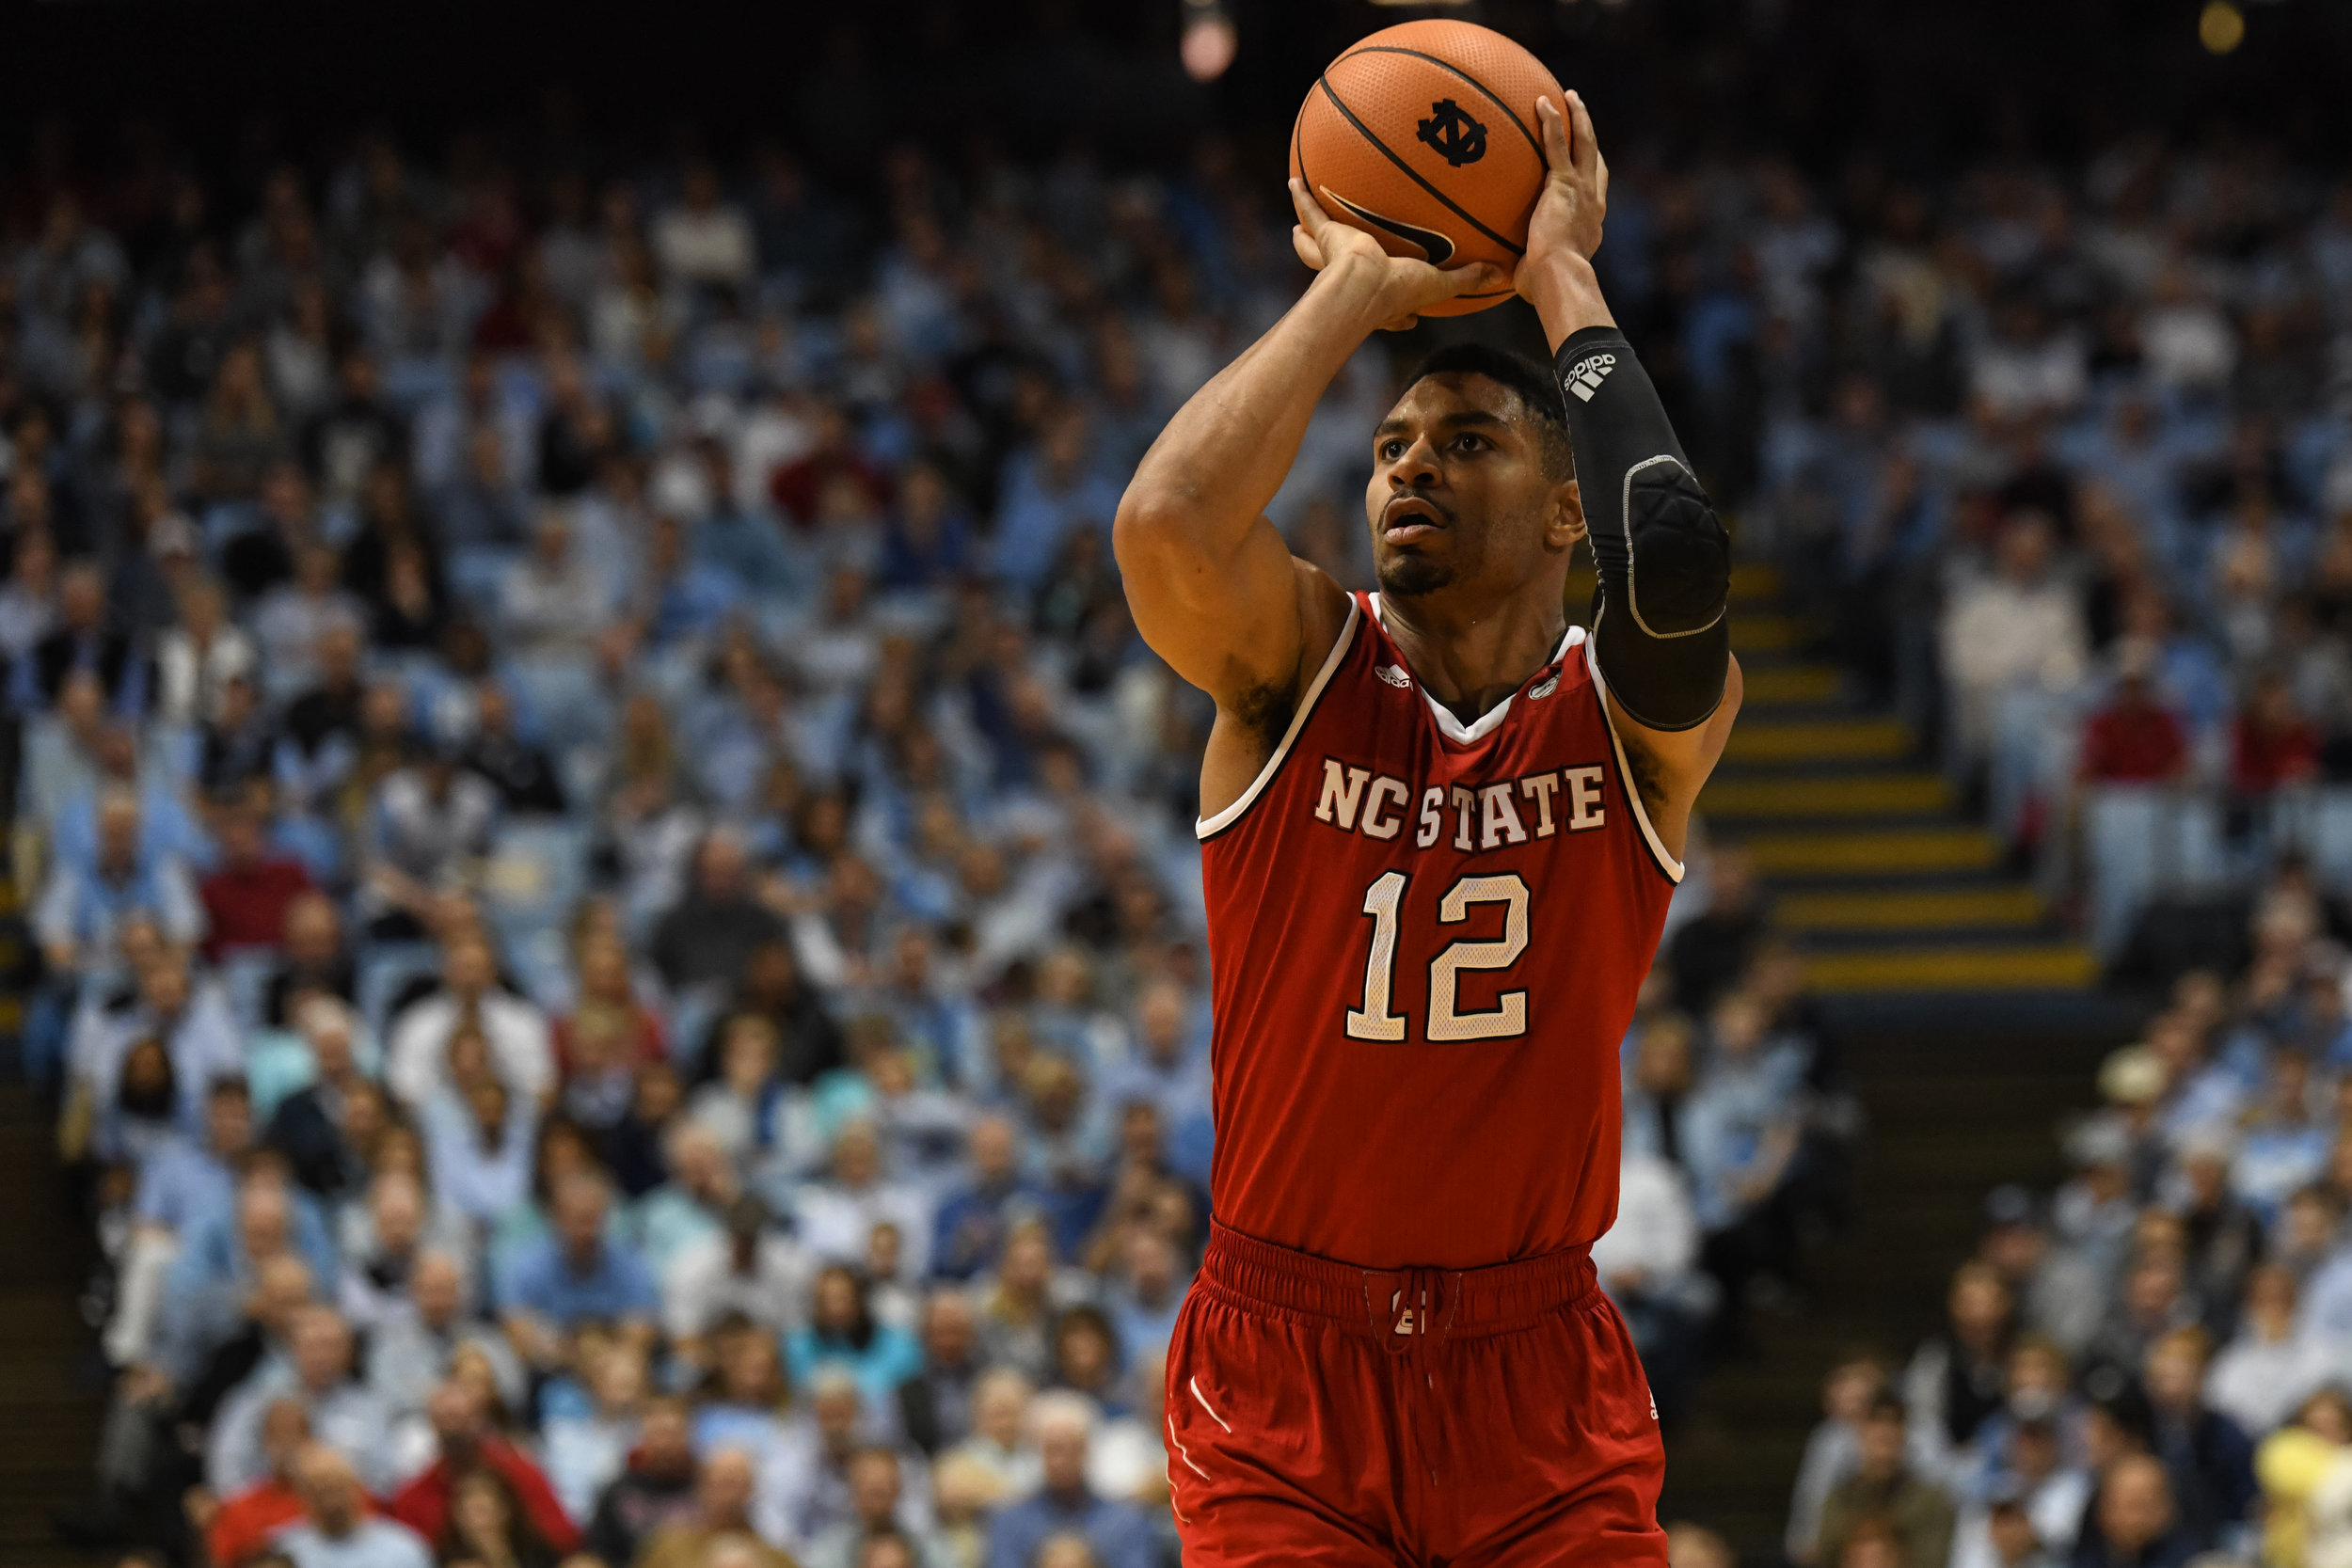 NC State at UNC-34.jpg